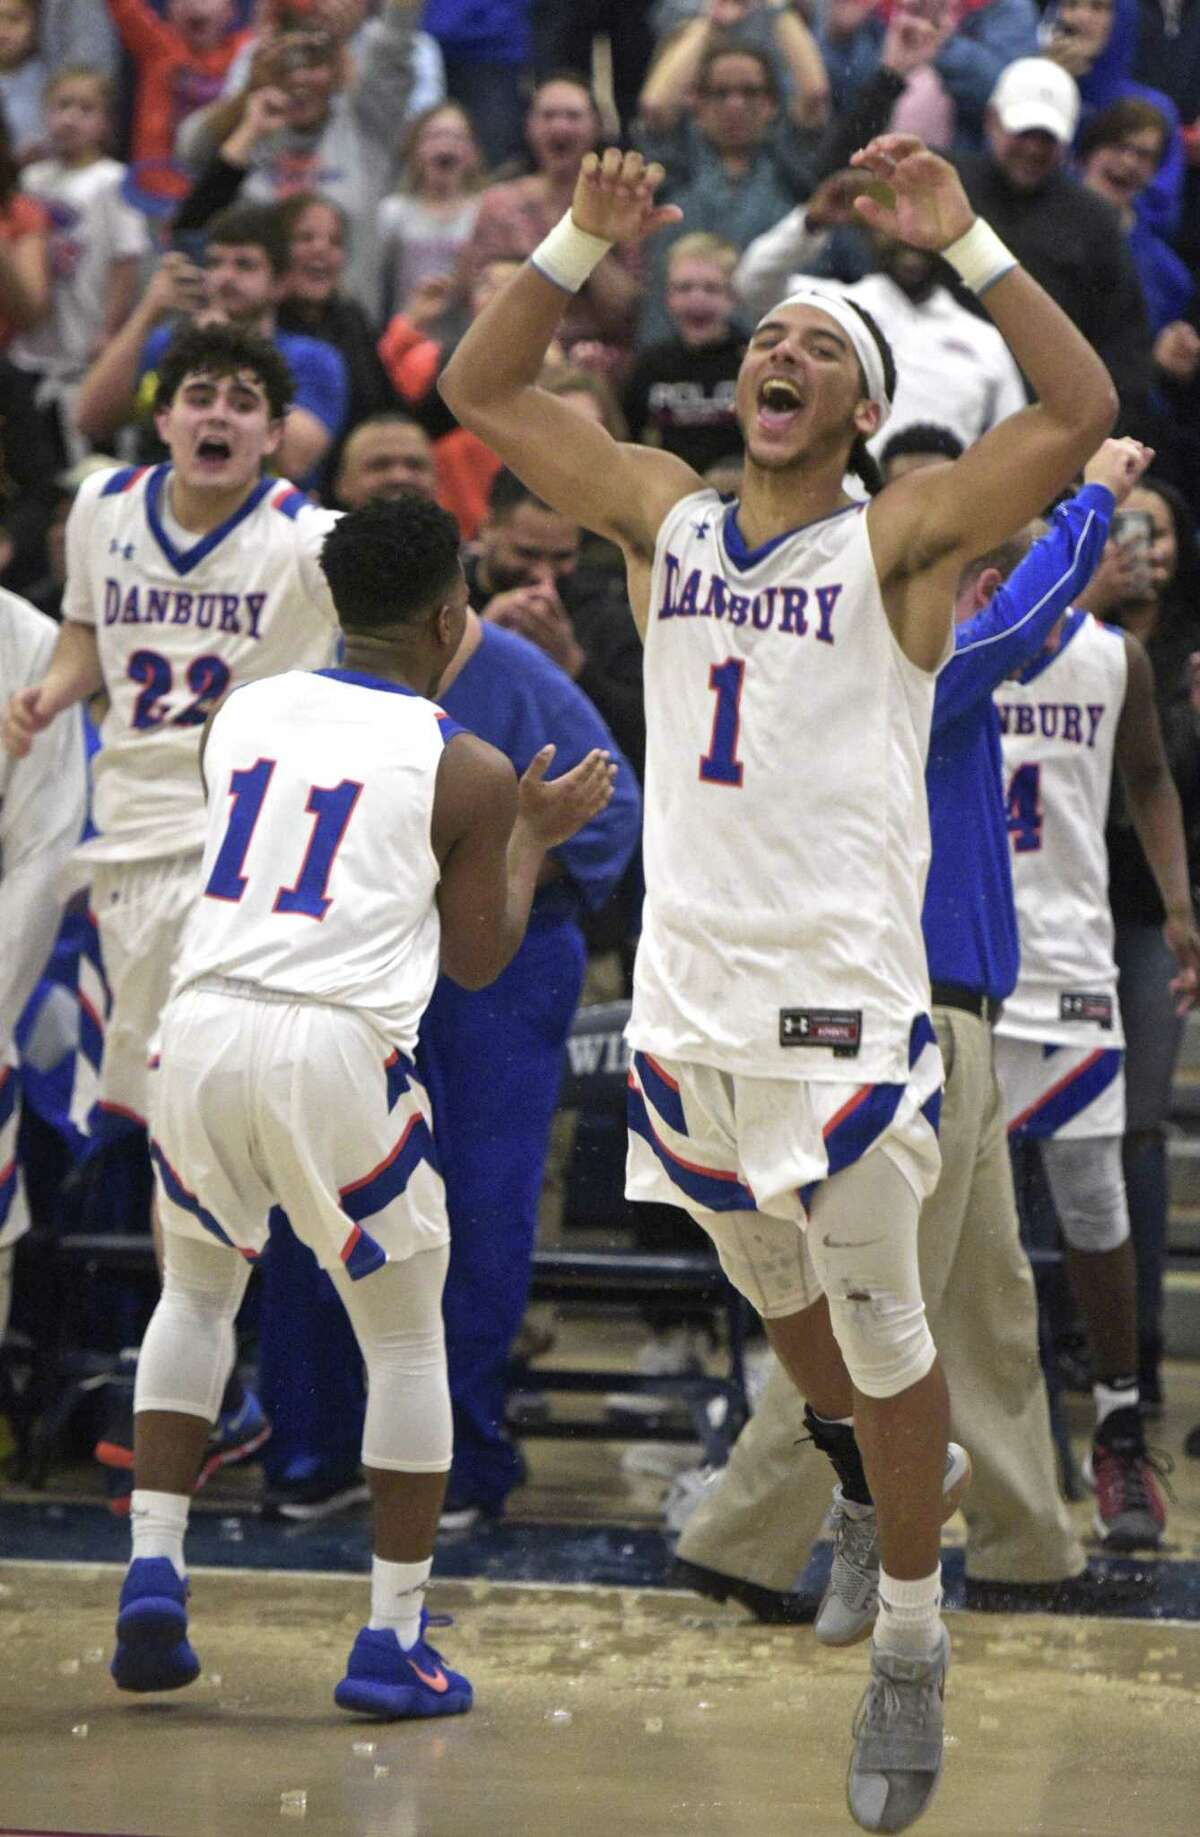 Danbury's Diante Vines (1) celebrates after the Hatters defeated Trumbull to win the FCIAC title on Thursday.